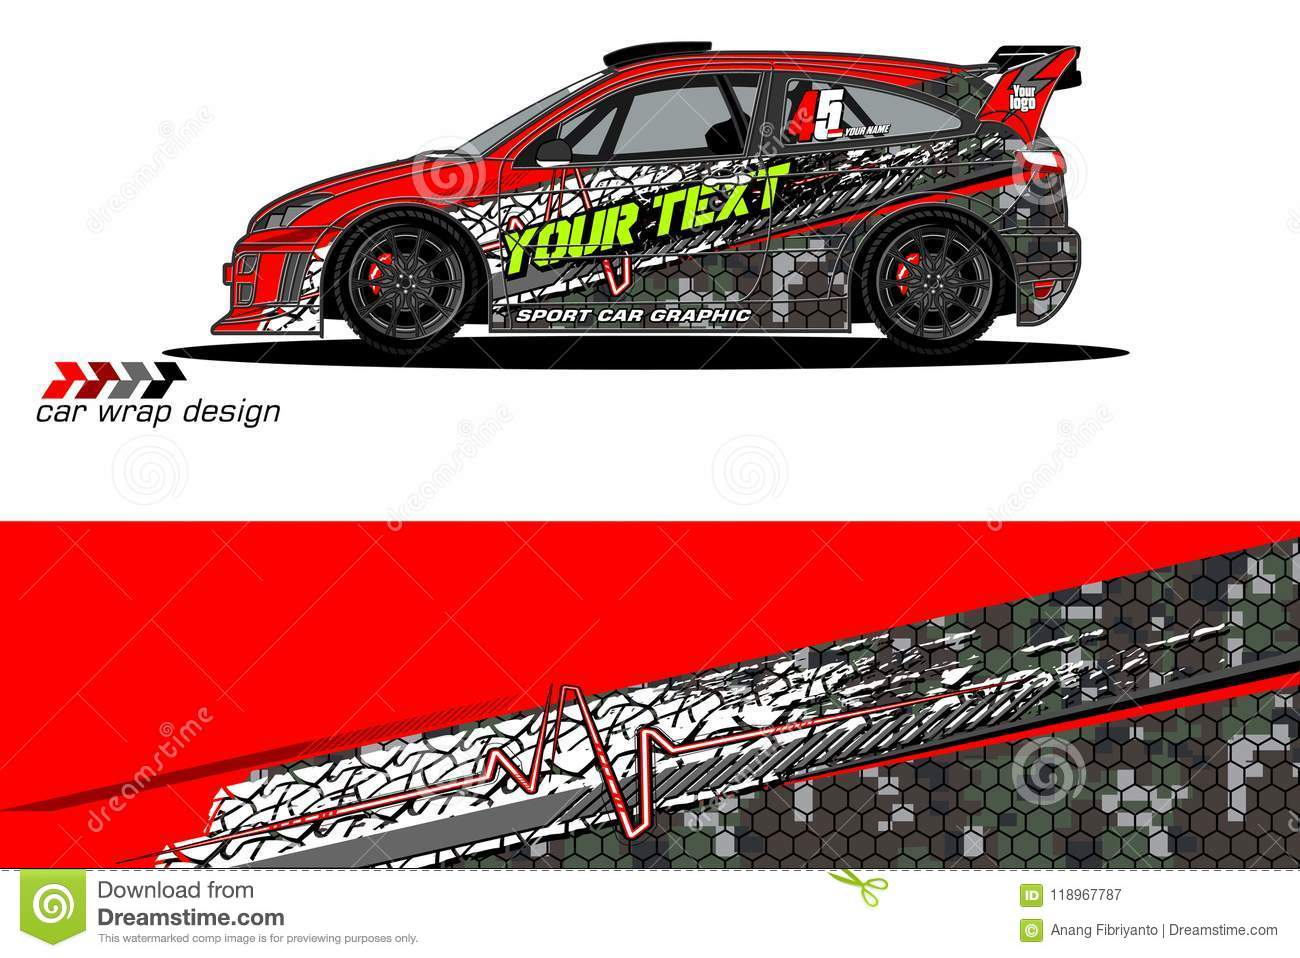 fce54a65dc Vehicle livery graphic vector. abstract grunge background design for vehicle  vinyl wrap and car branding